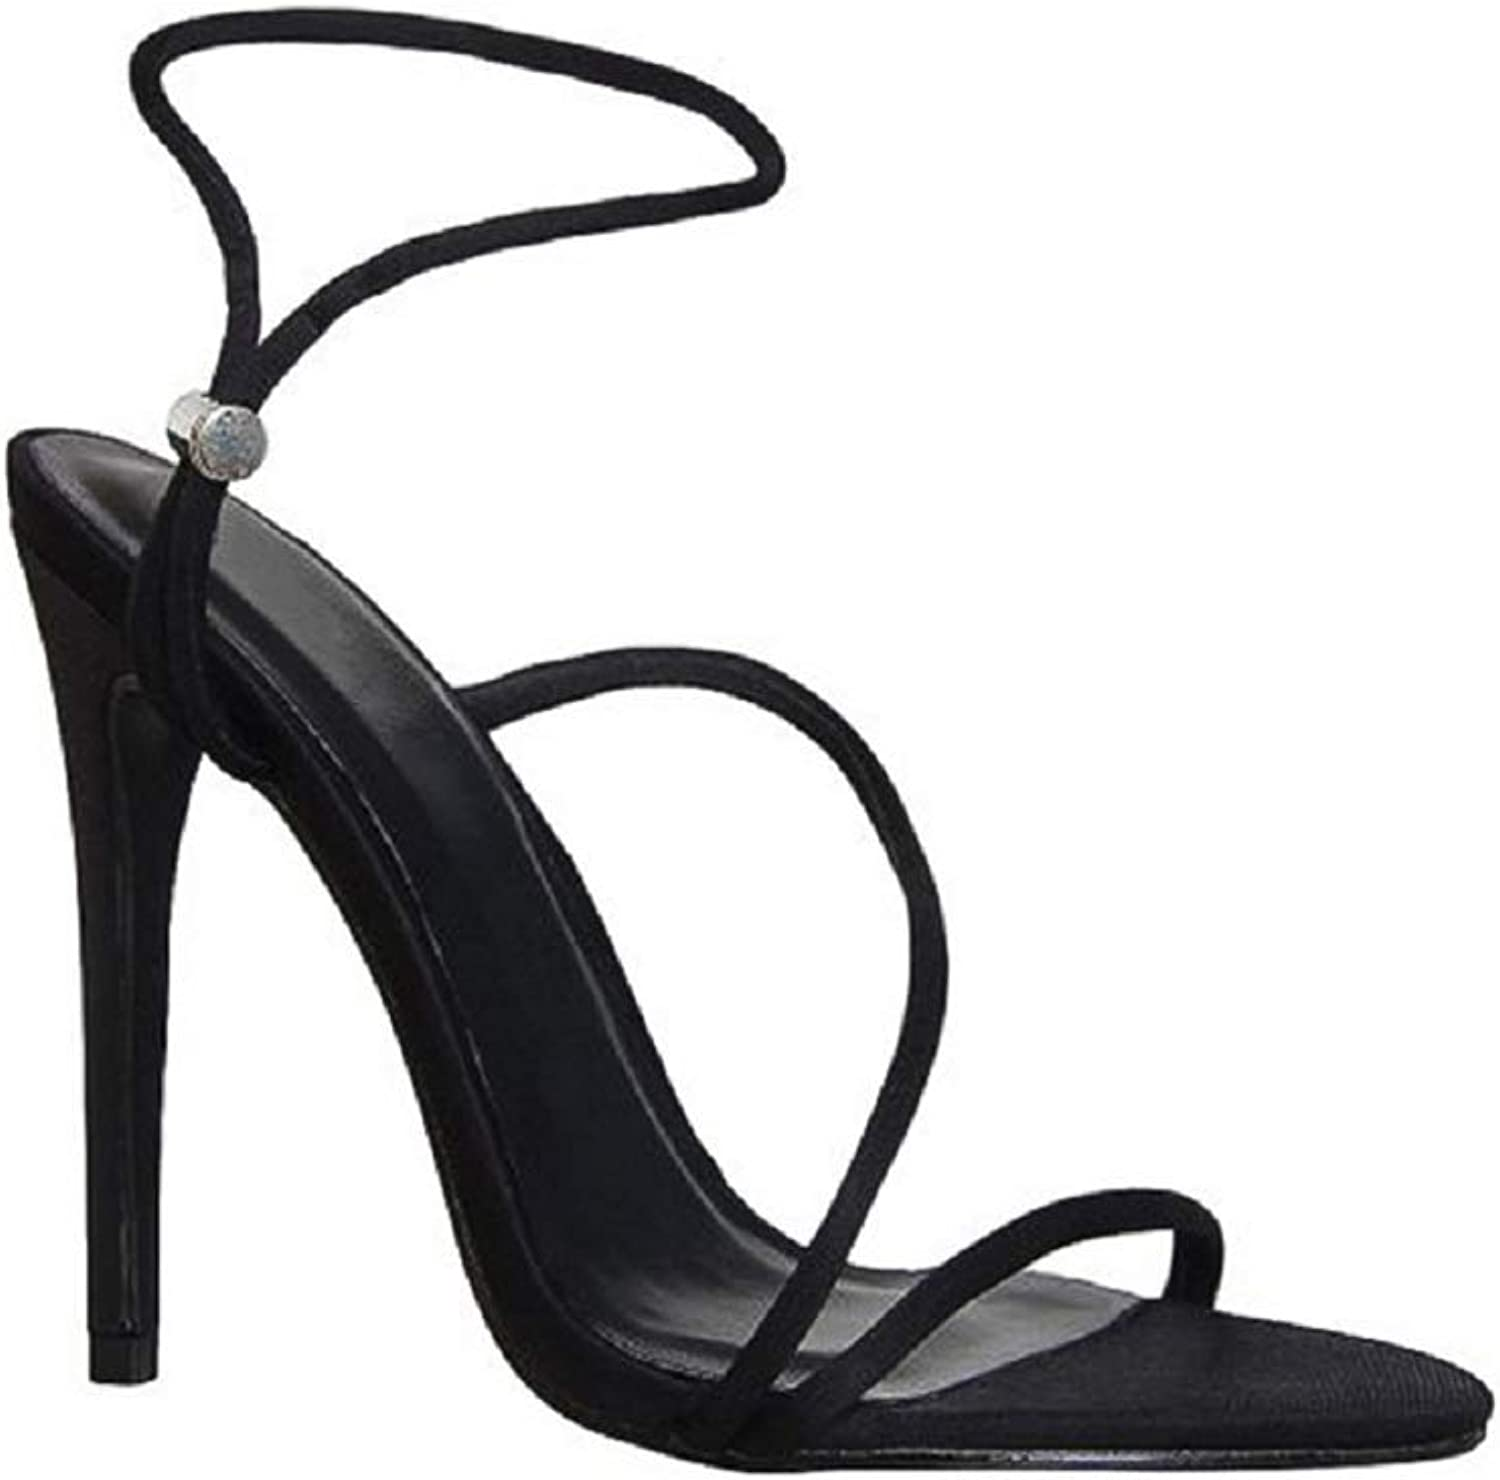 Perixir 2019 Summer New Ankle Strap Cross-Tied Women Sandals 11.5cm High Heels Sexy Grain Lace-Up Sandals shoes